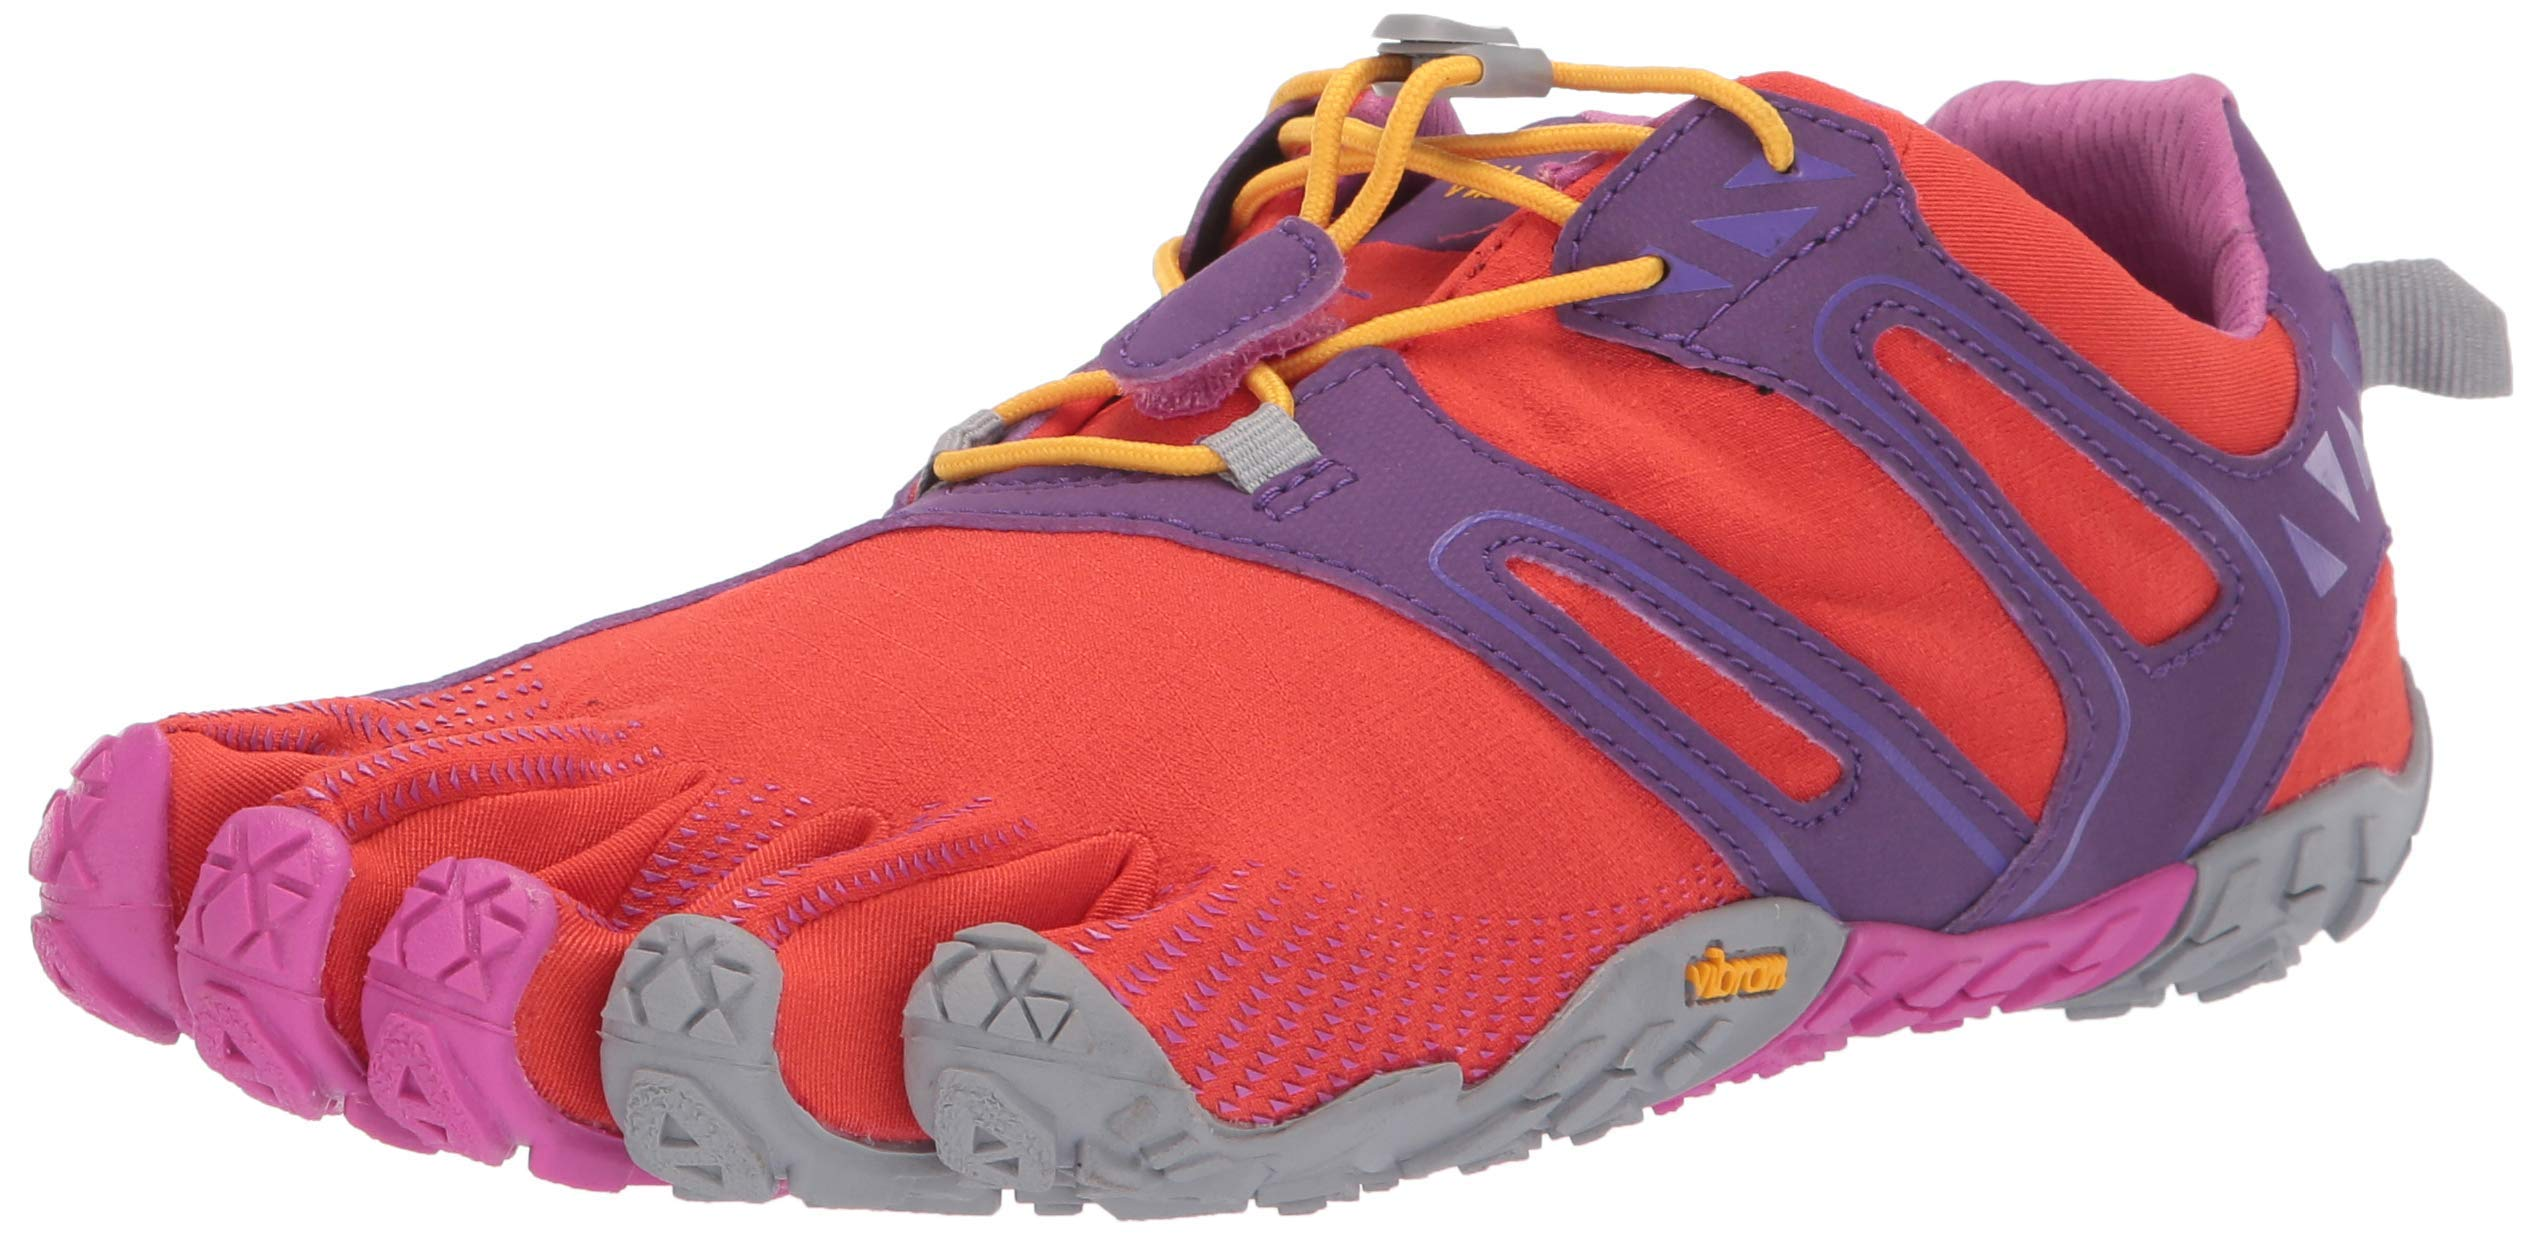 Vibram FiveFingers V-Trail, Women's Trail Running Shoes, Orange (Magenta/Orange), 7-7.5 UK (40 EU) by Vibram (Image #1)